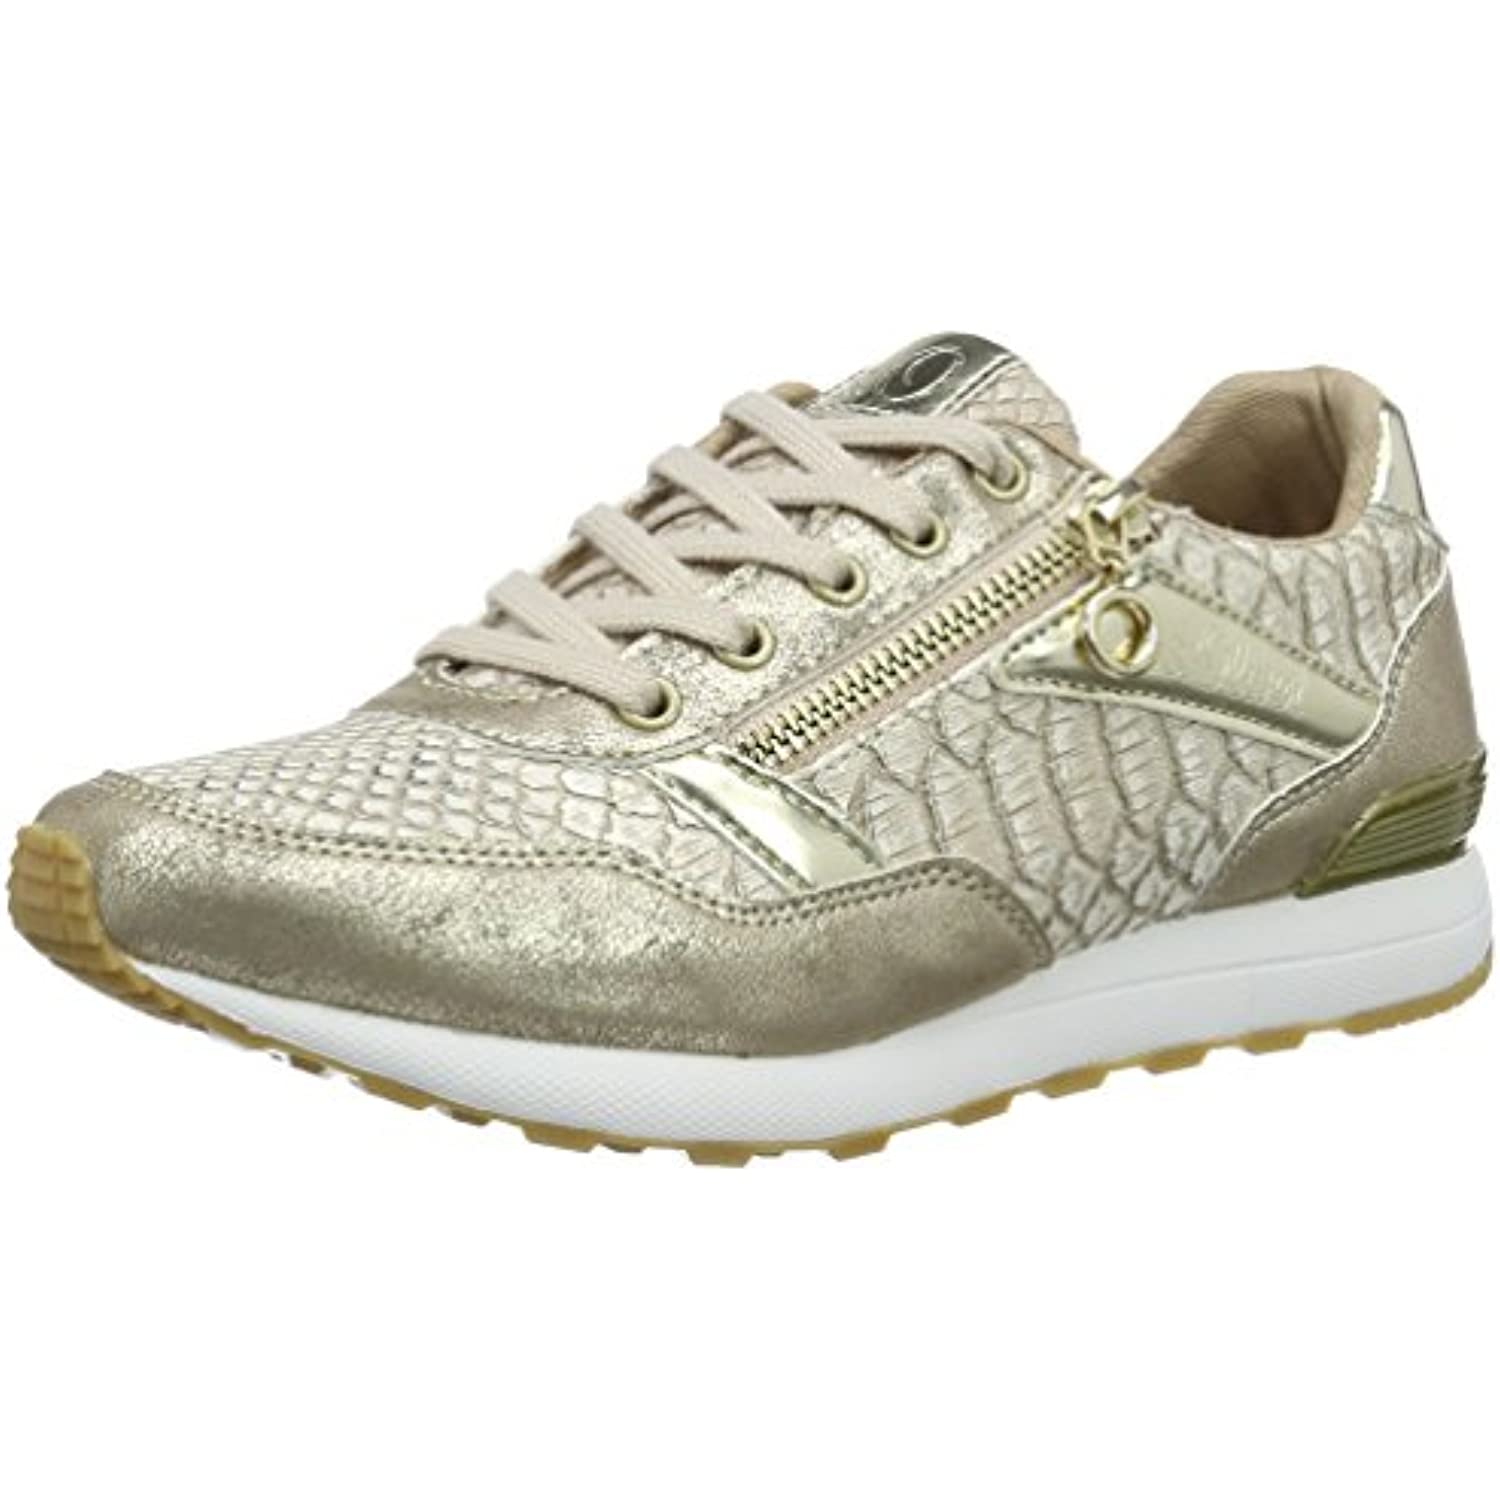 s.Oliver 23655, Sneakers Basses Femme - B01N8TO2WC B01N8TO2WC B01N8TO2WC - 8c759f